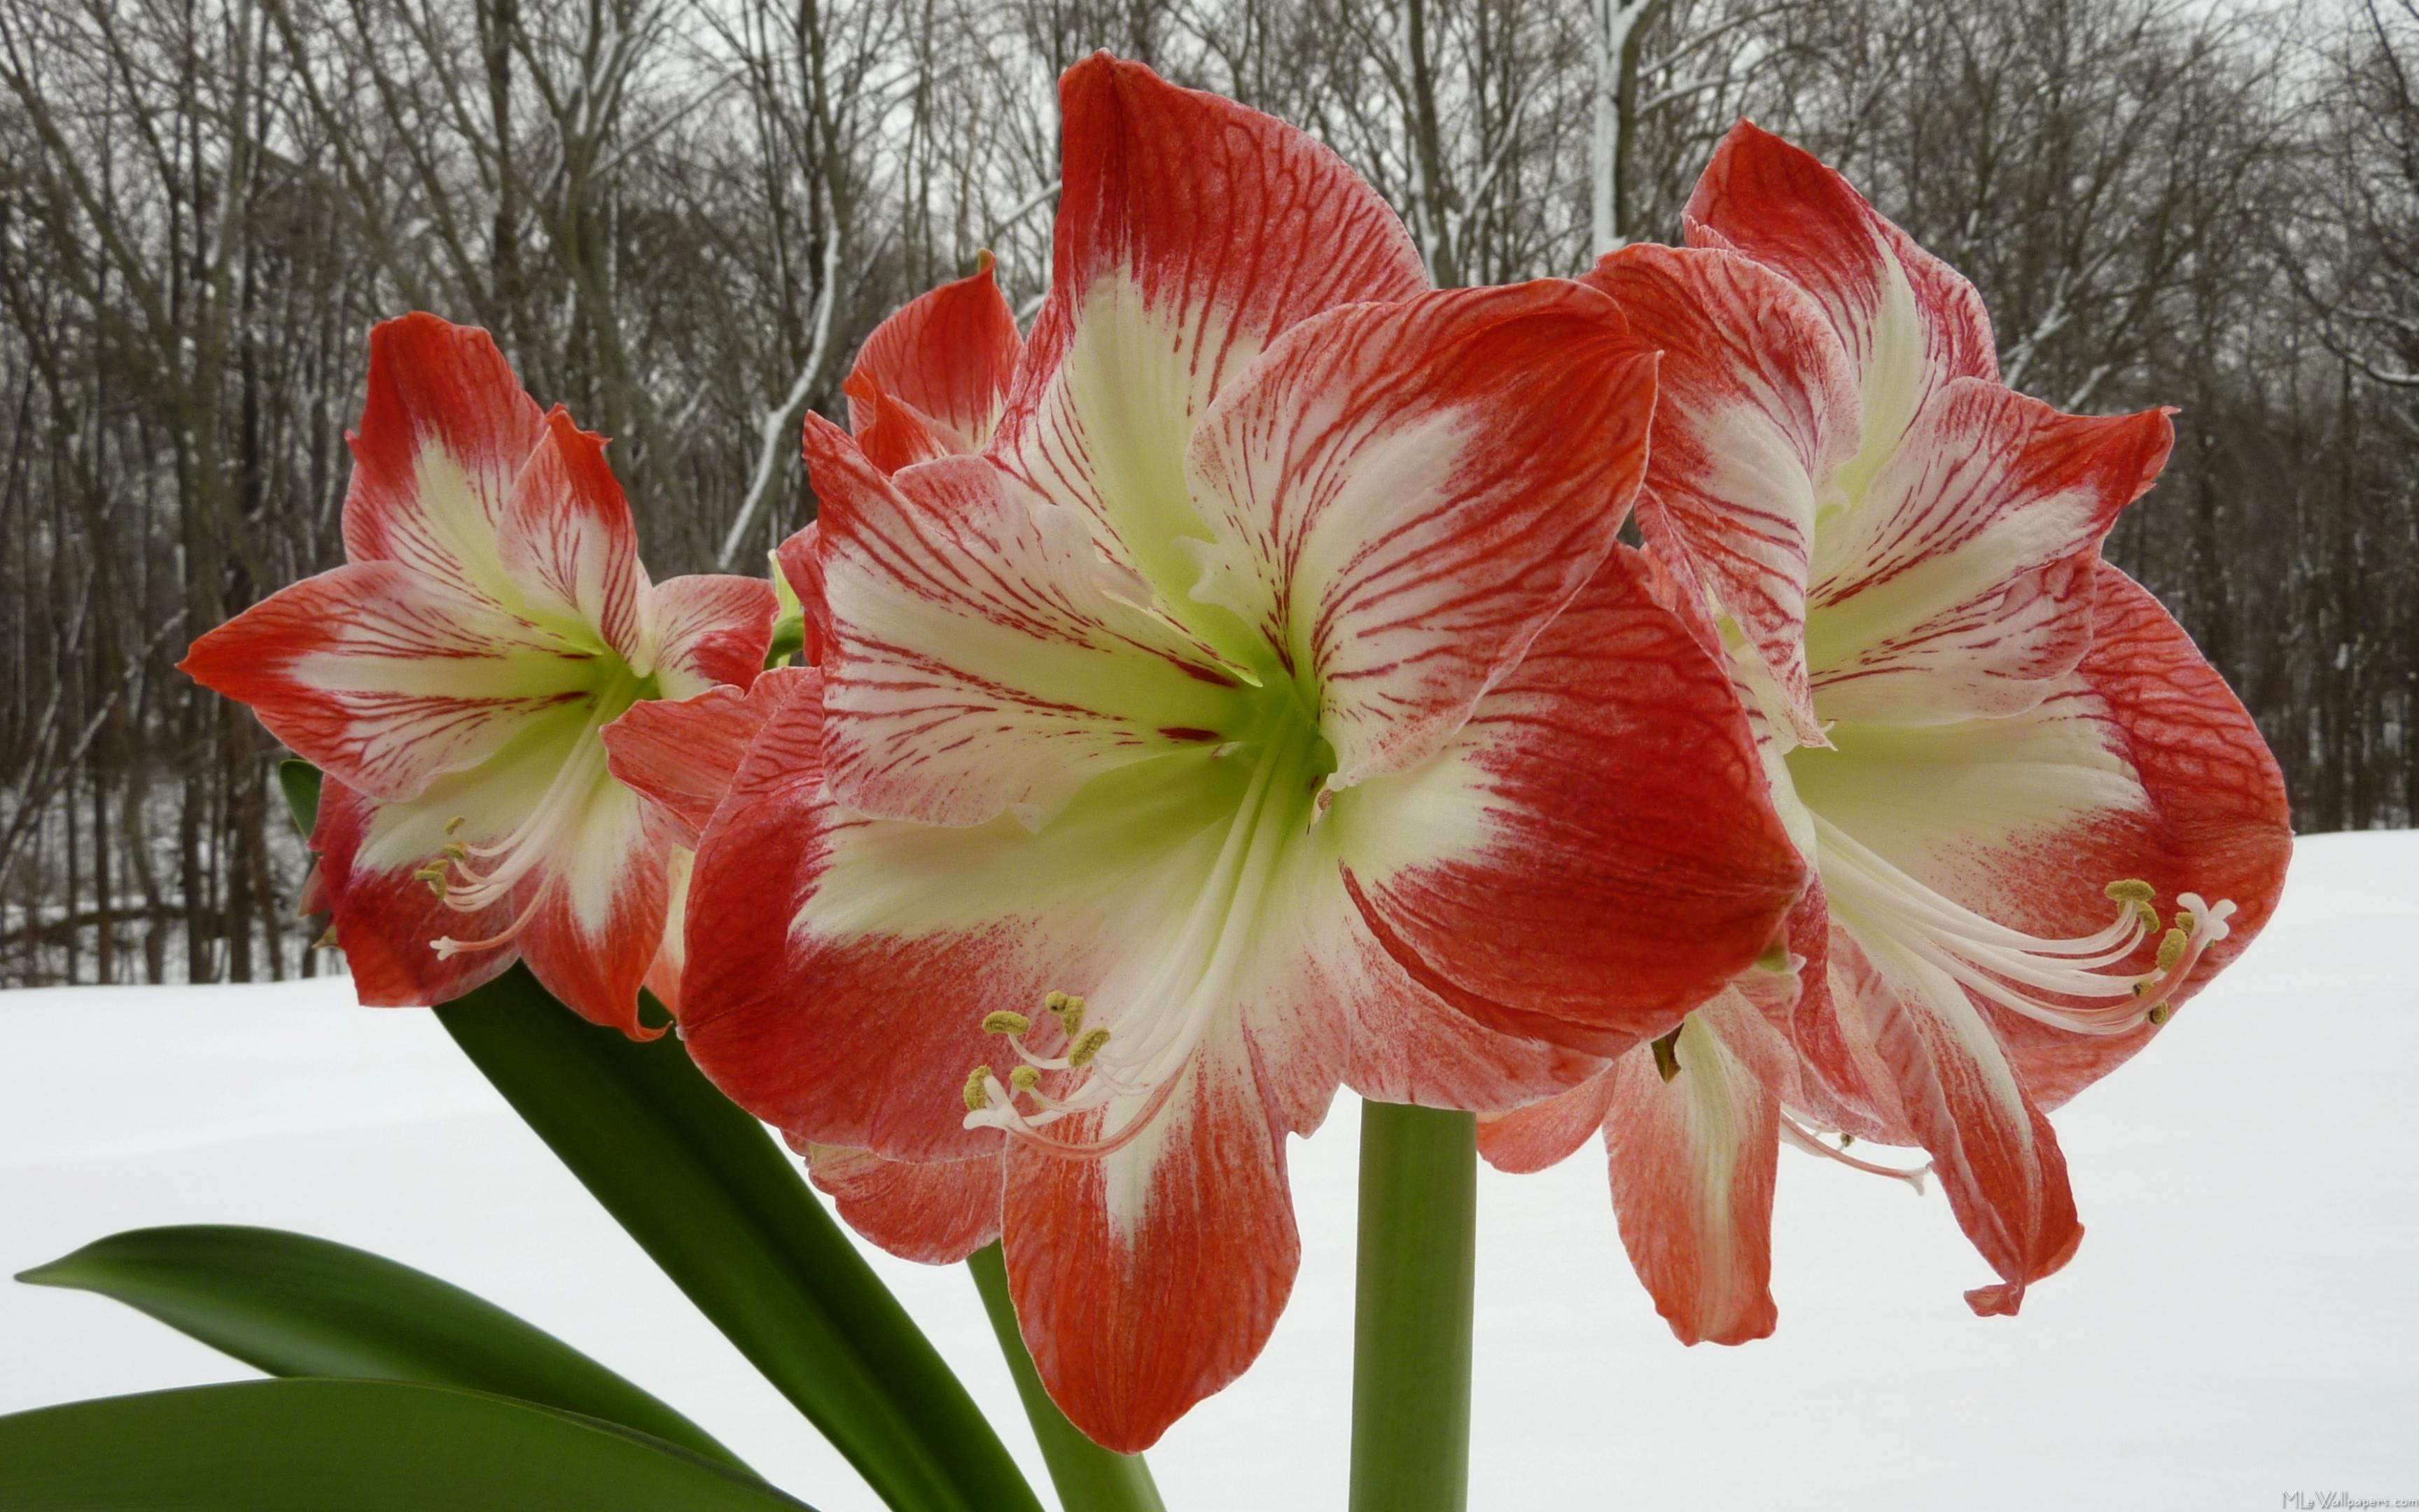 Flowers that bloom in the winter - Amaryllis In Snow I